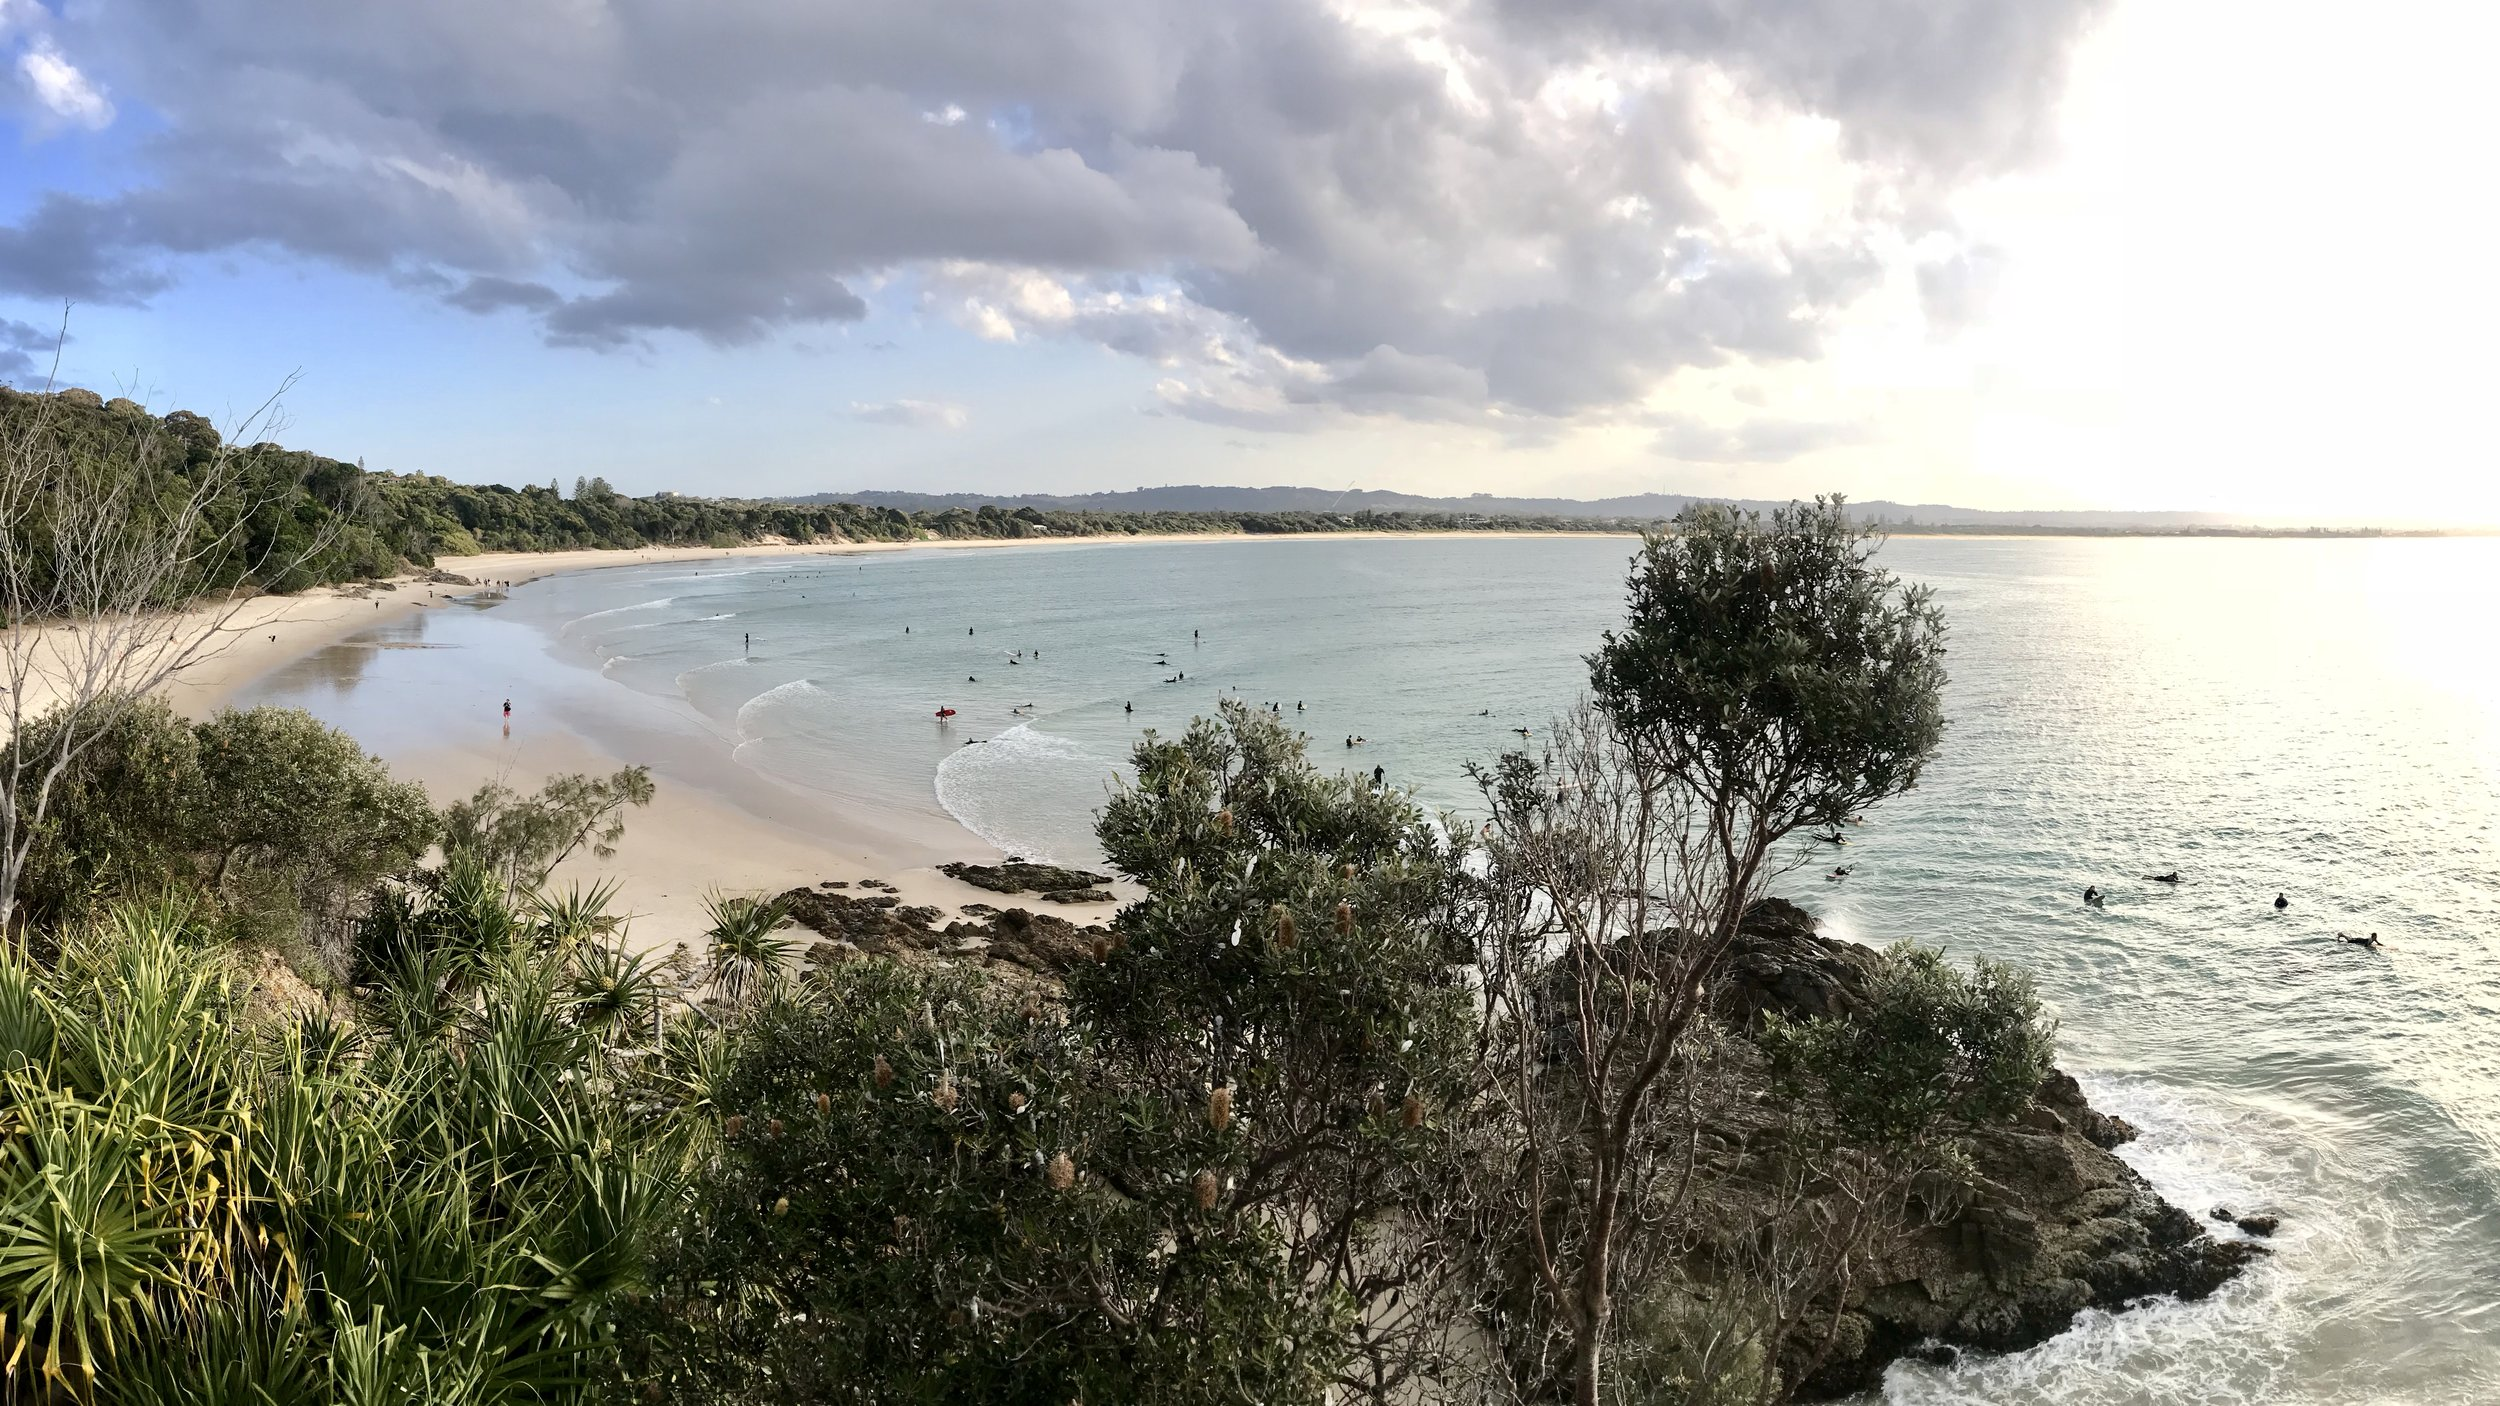 The Pass, arguably Australia's most exquisite beach